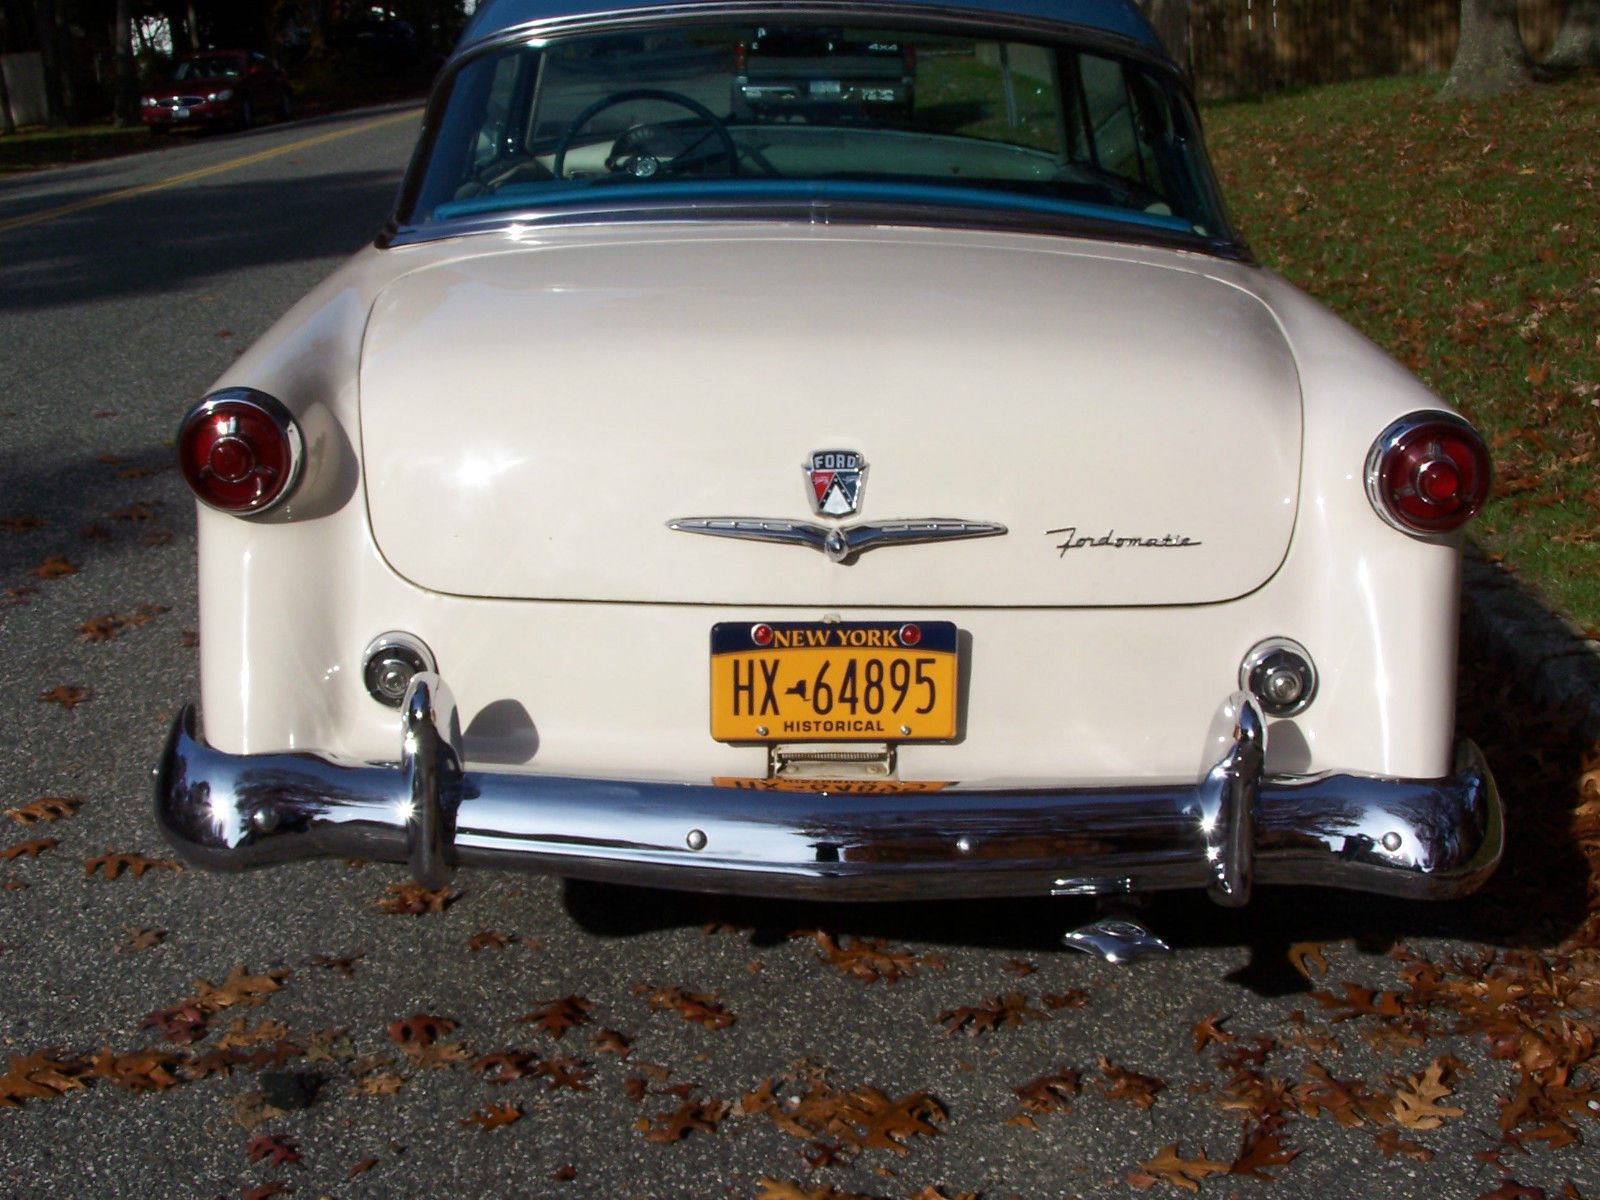 1954 Ford Crestline Skyliner Victoria Glass Top 239 V8 Fordomatic O Matic Automatic Transmission Power Steering Brakes And A Beautiful Car